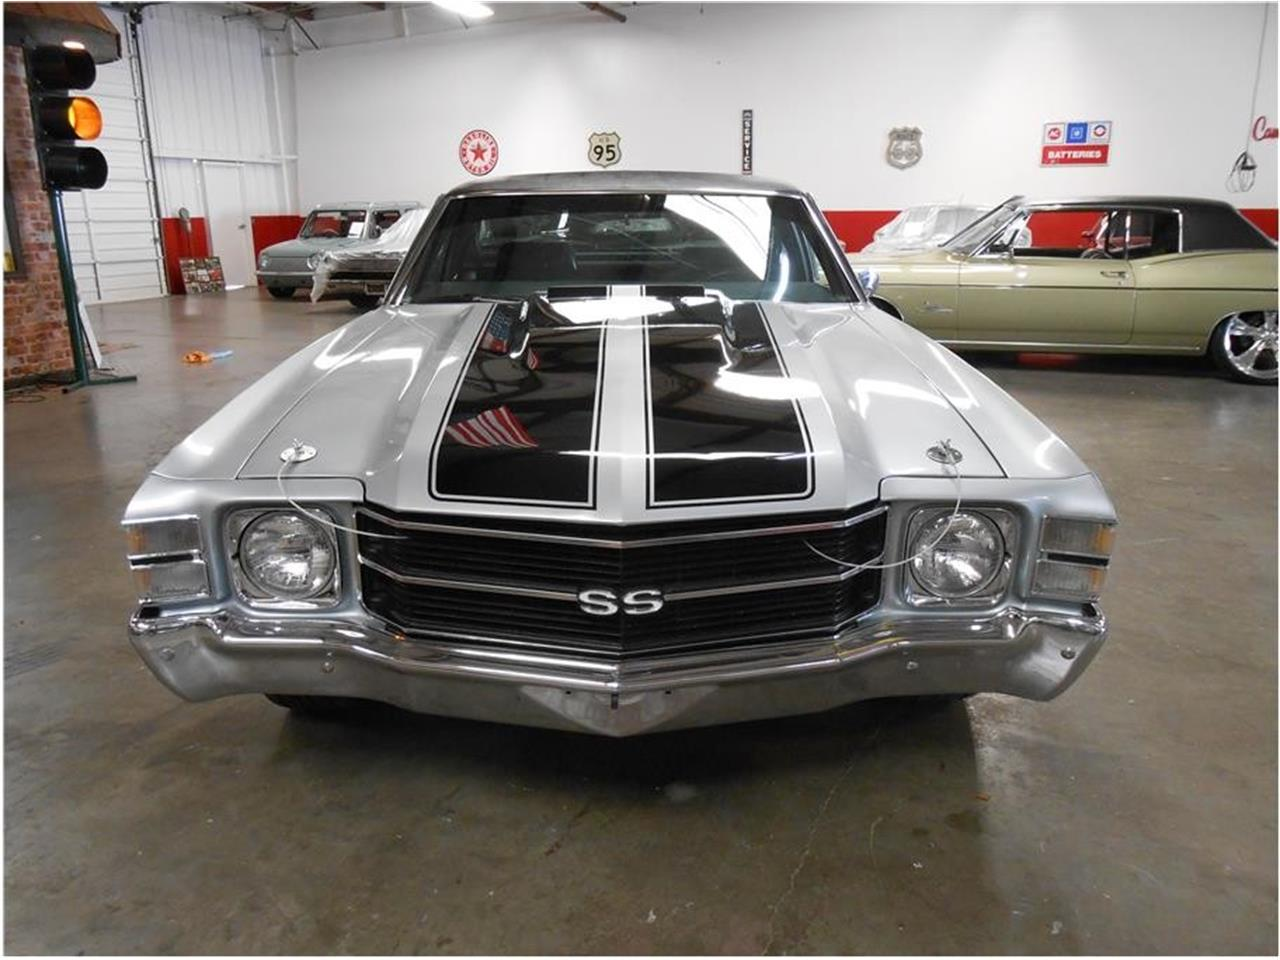 1971 Chevrolet El Camino for sale in Roseville, CA – photo 4